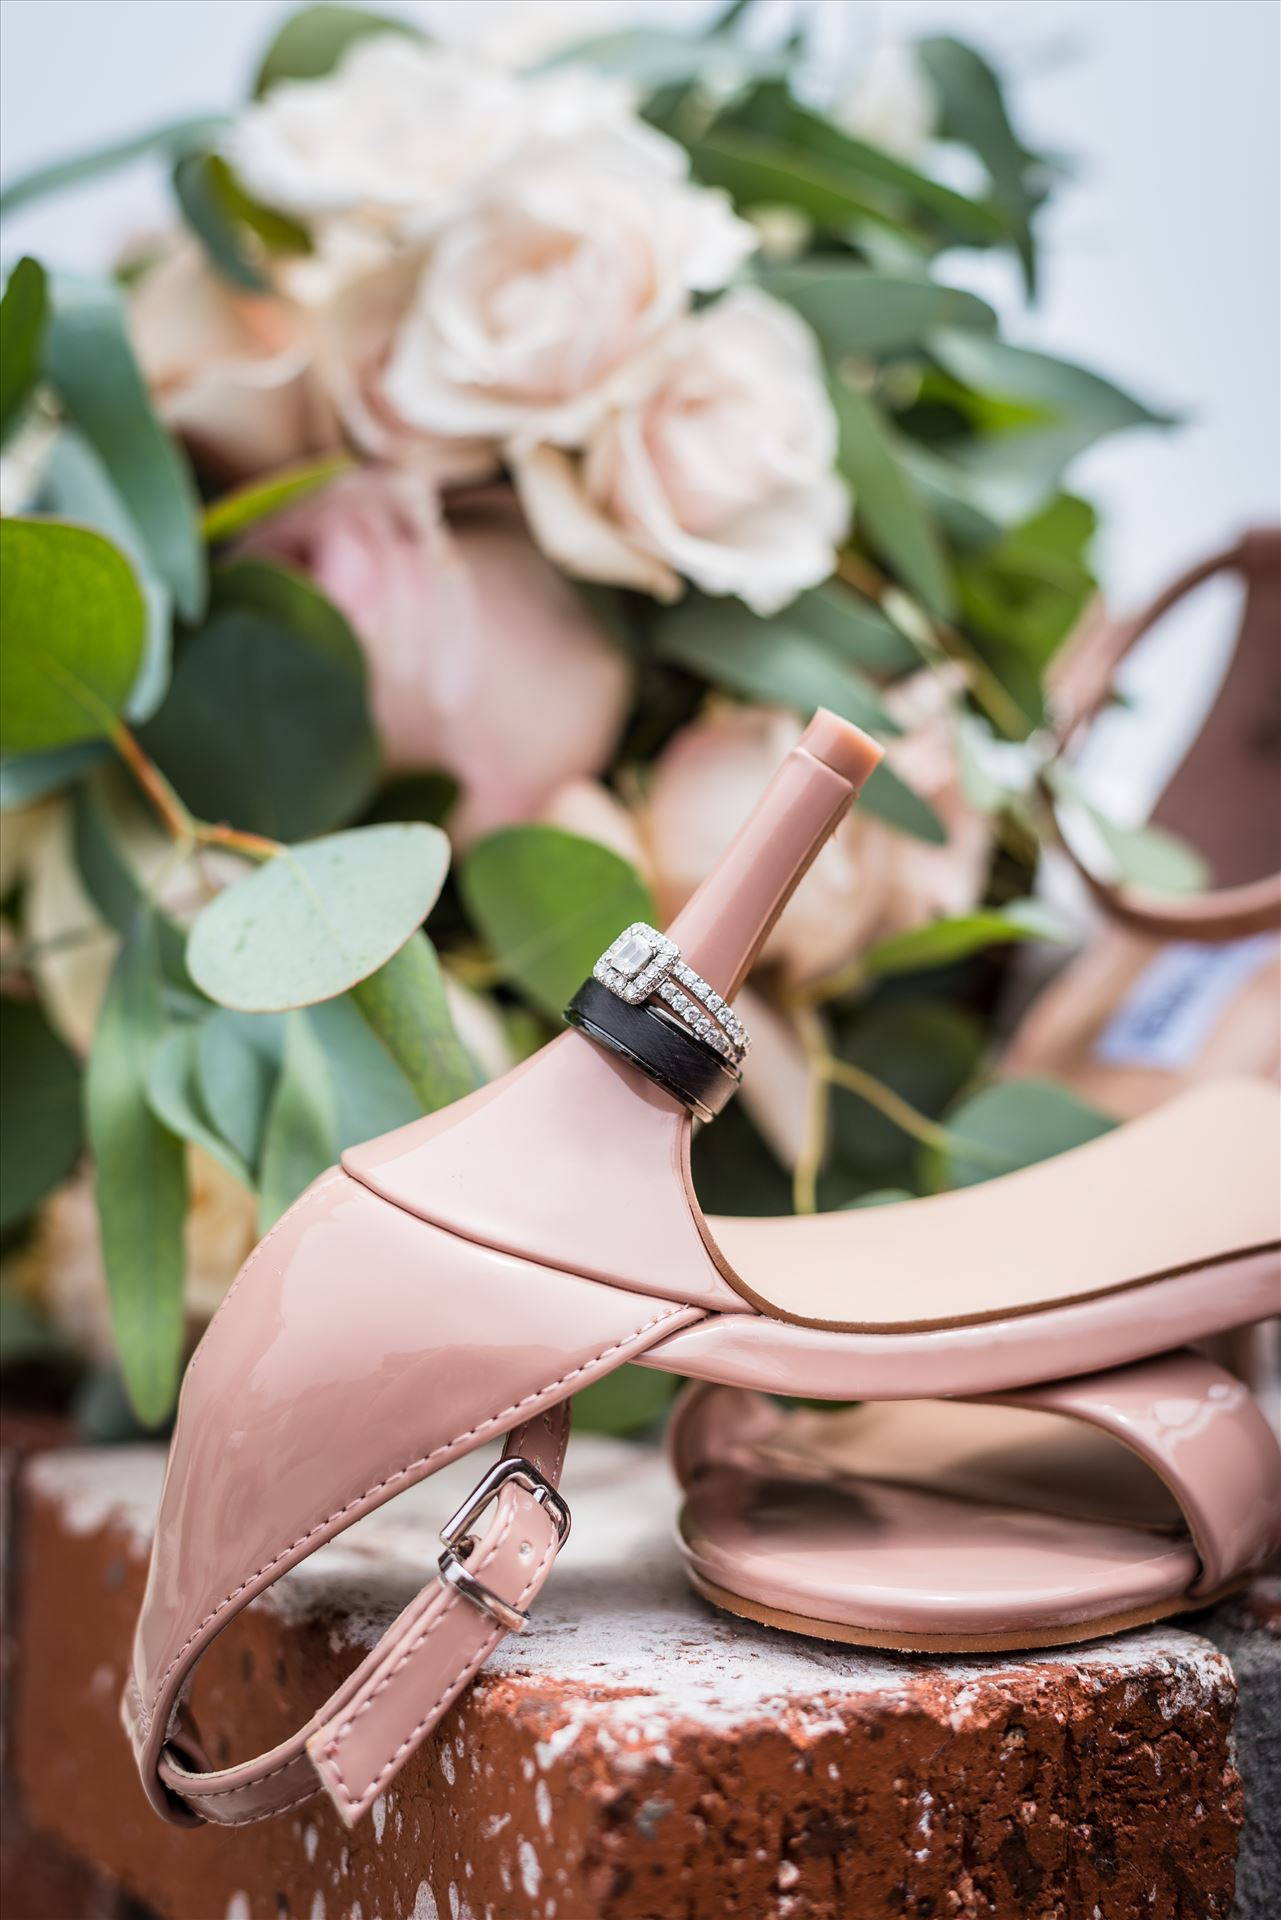 FW-5919.JPGCayucos California Beach and Bluffs Wedding near Morro Bay and Cambria with romantic chic flair by Mirror's Edge Photography, San Luis Obispo County Wedding Photographer.  Wedding rings, flowers and brides shoes